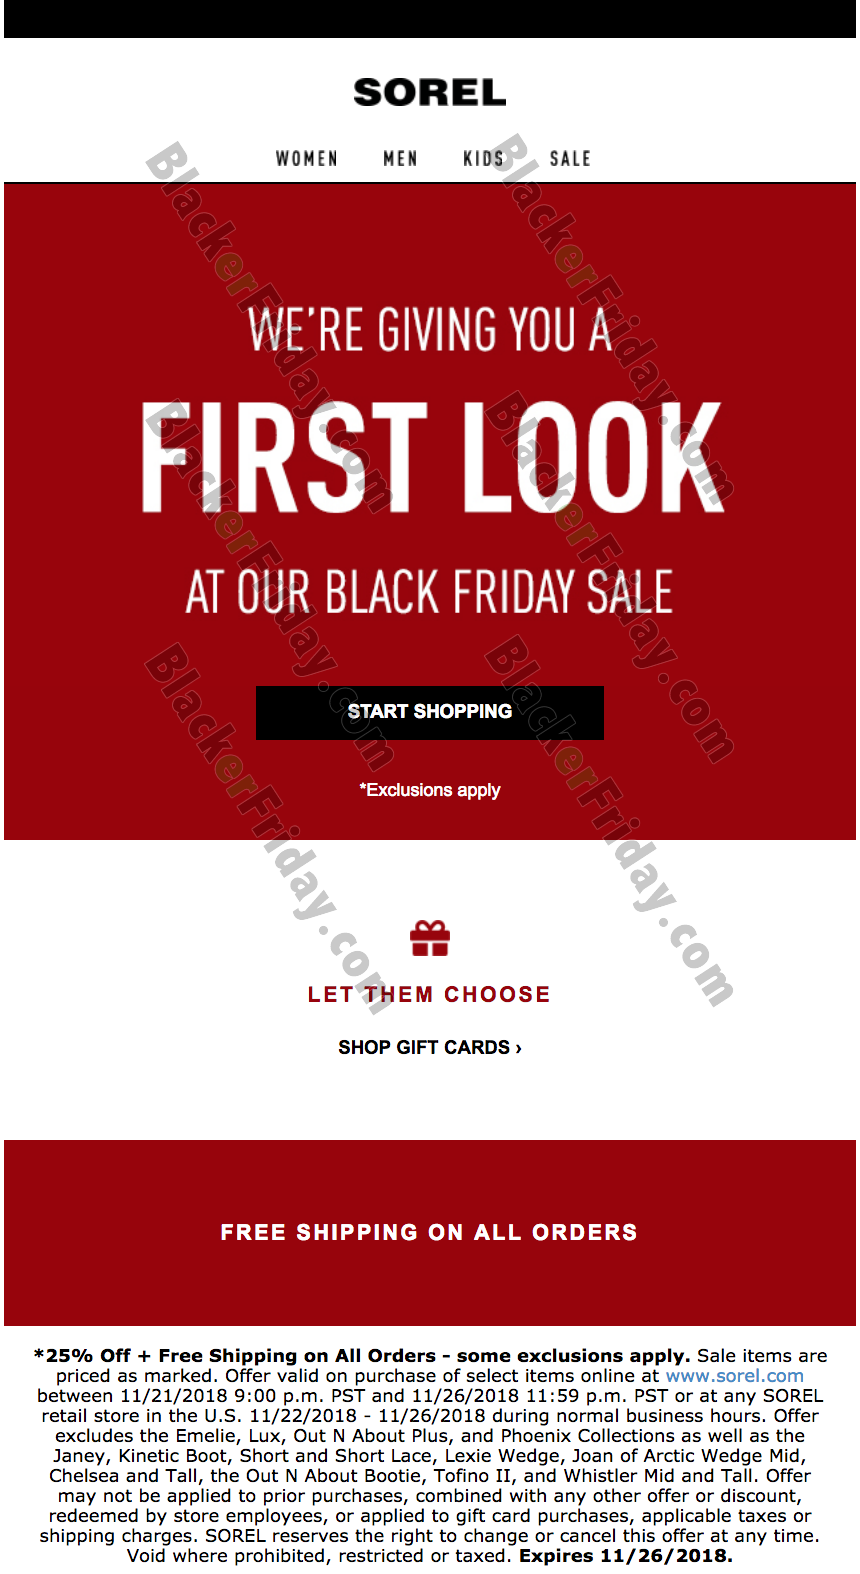 Sorel Black Friday 2020 Sale - What to